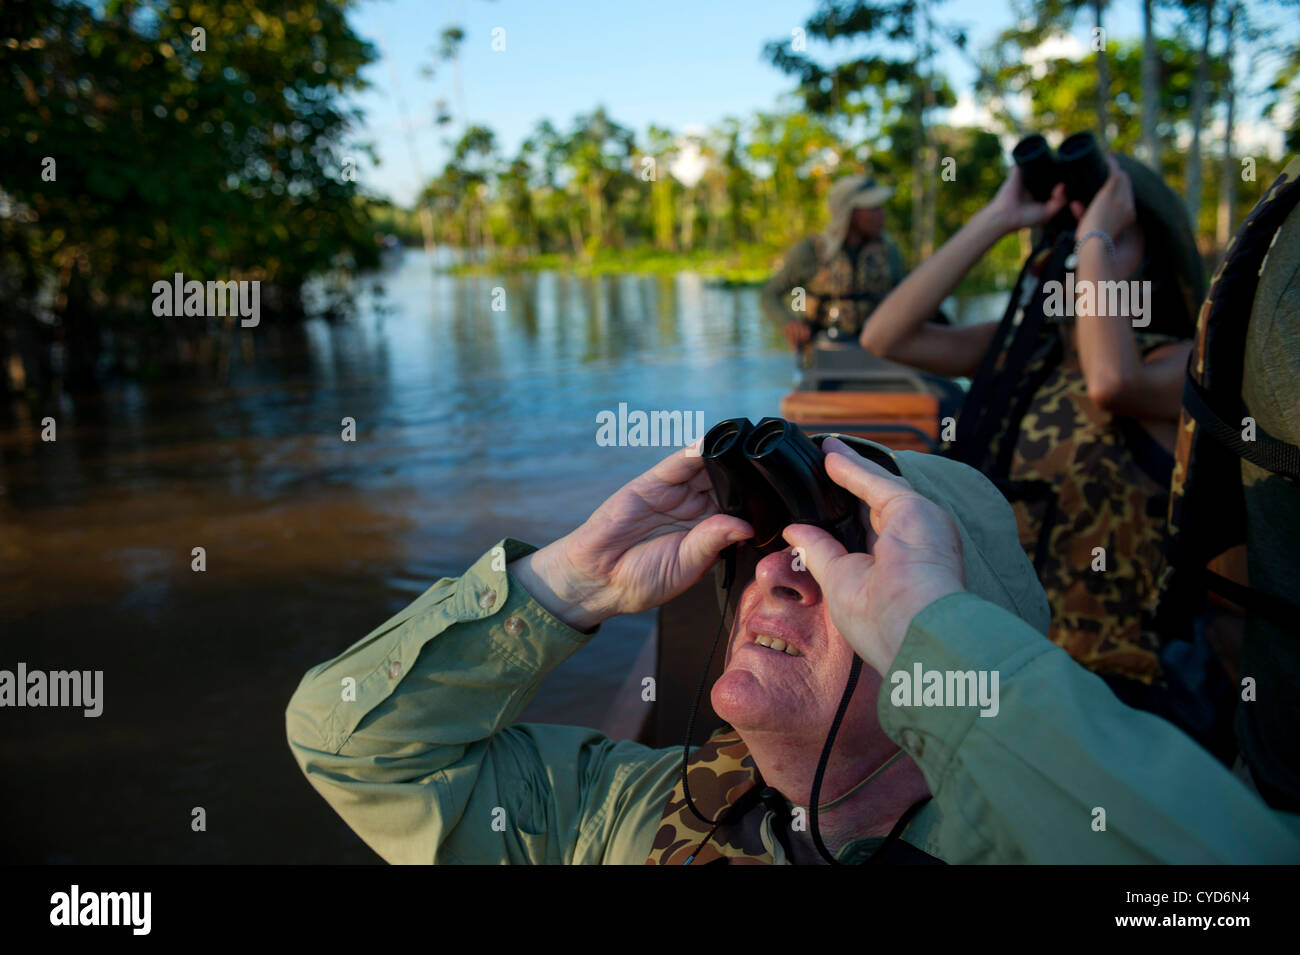 Tourism in the Amazon rainforest in Peru. - Stock Image